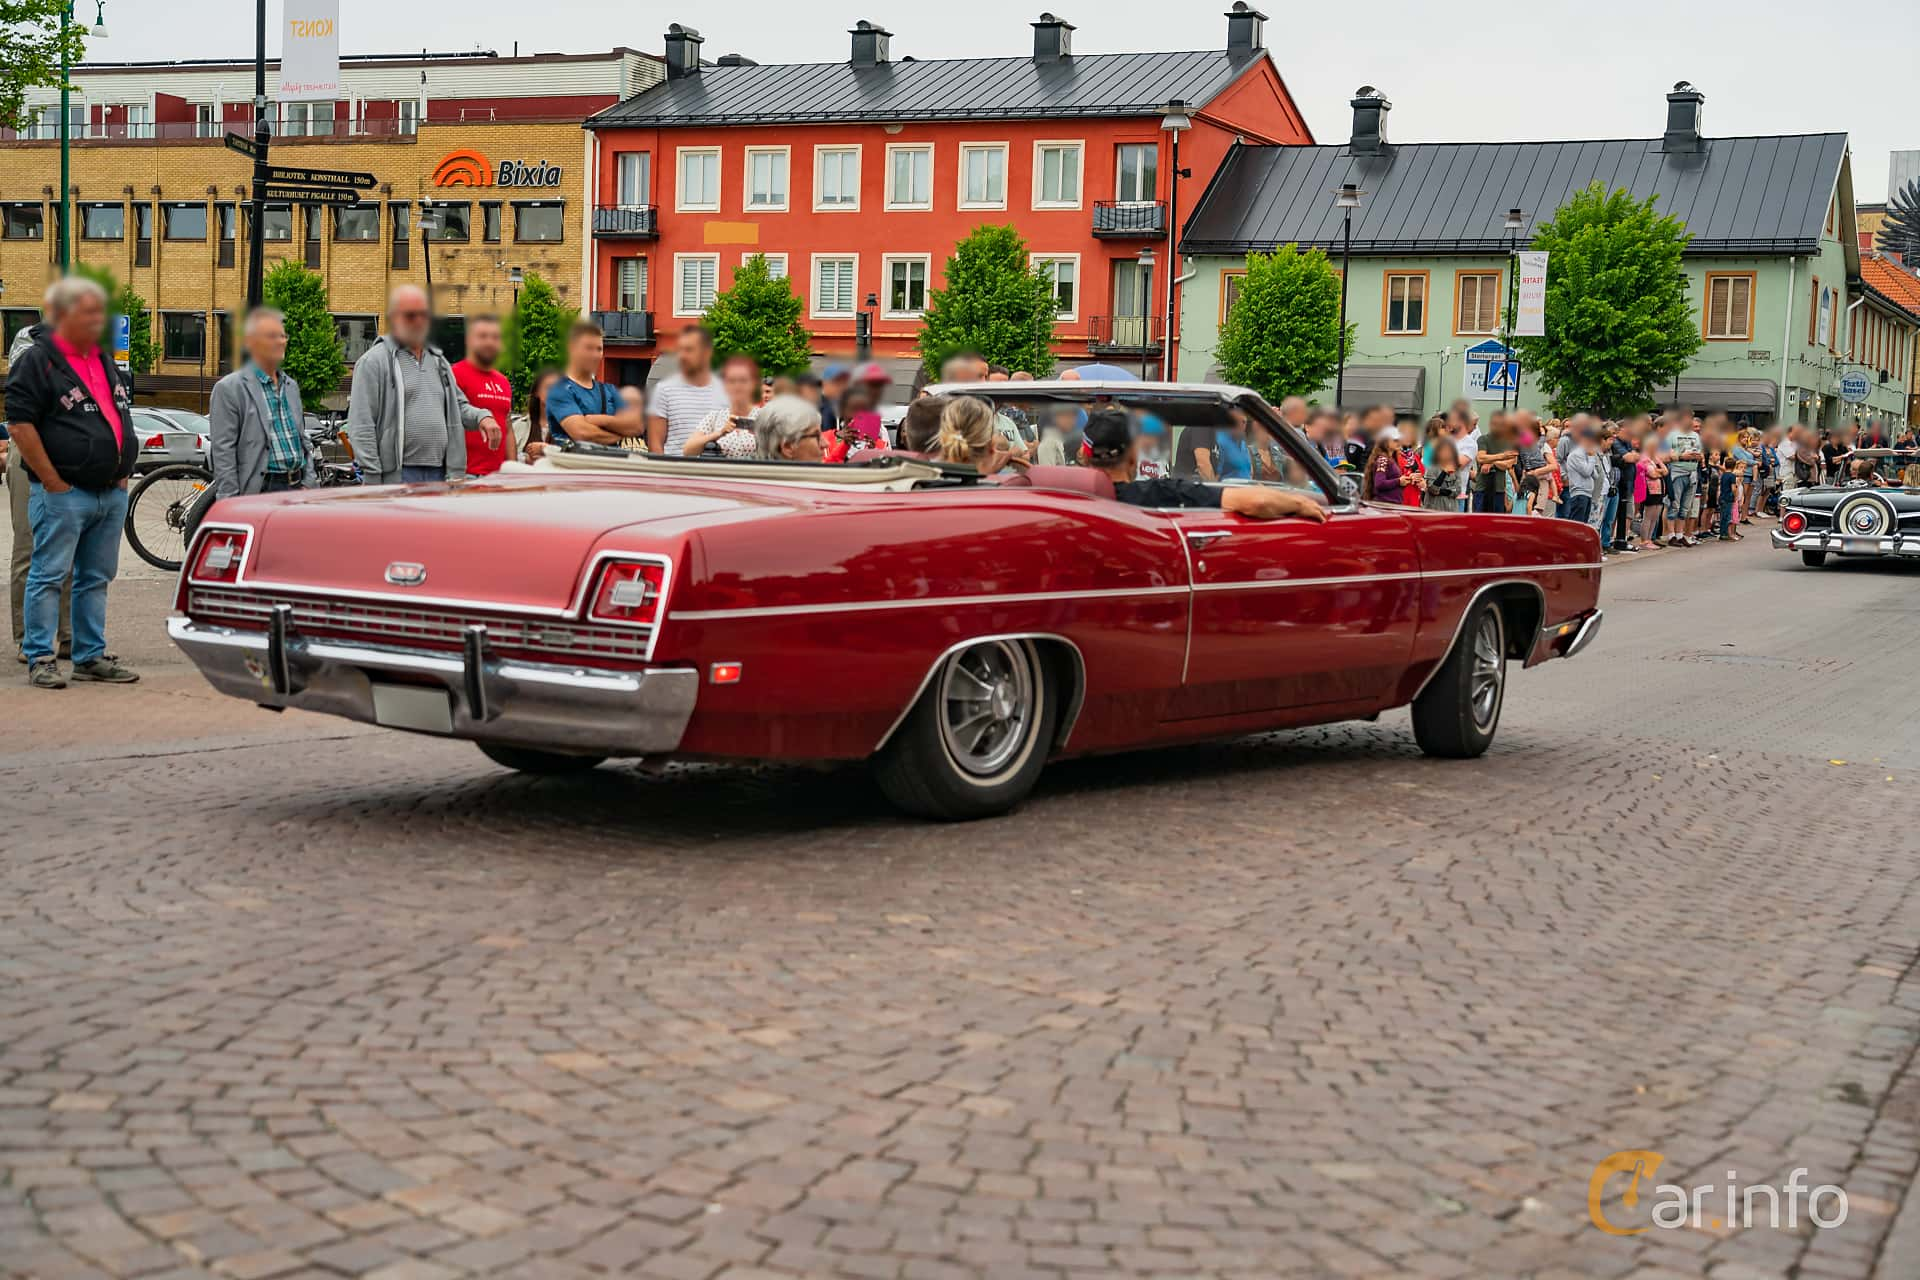 Ford XL Convertible 7.0 V8 Automatic, 324hp, 1969 at Nässjö Cruising 2019